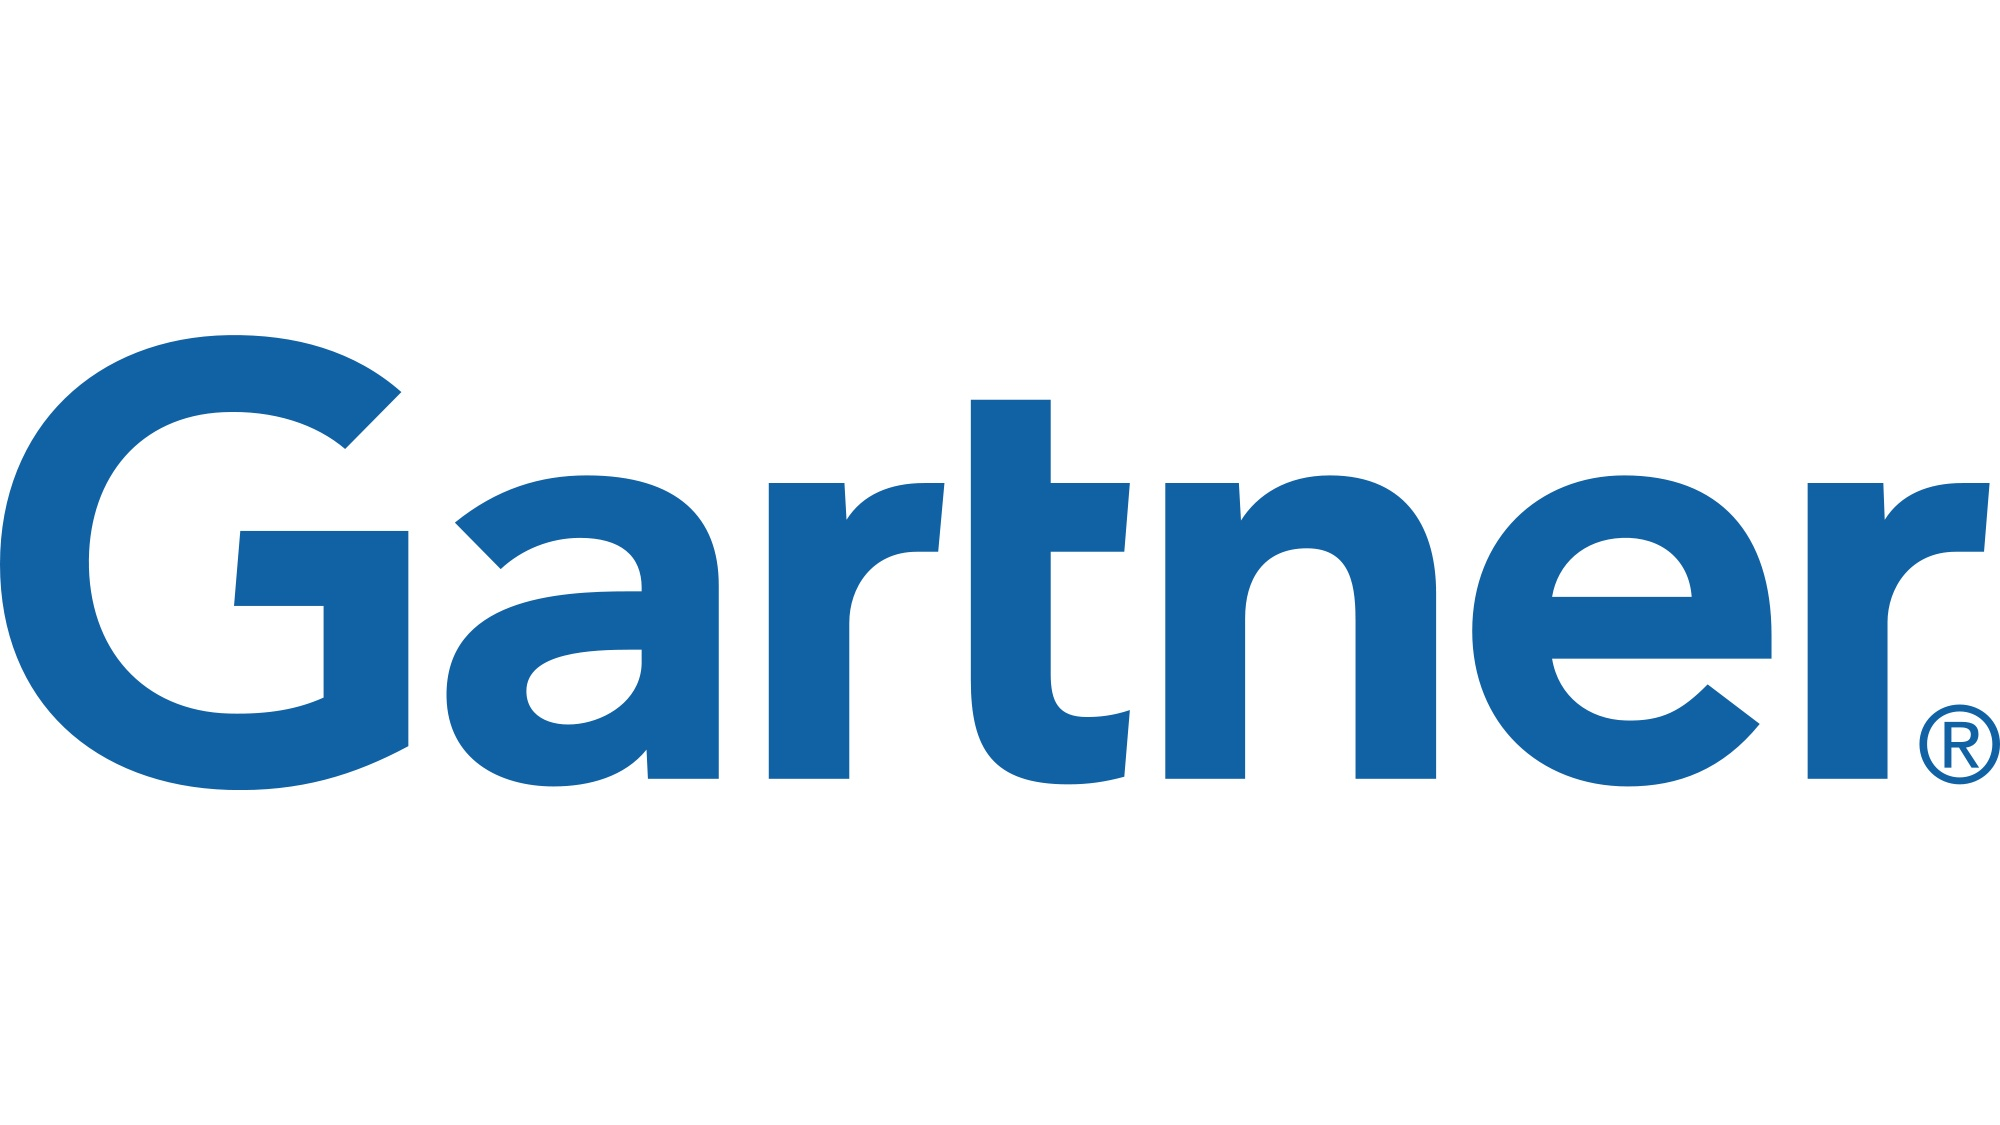 Gartner Identifies Three Megatrends That Will Drive Digital Business Into the Next Decade